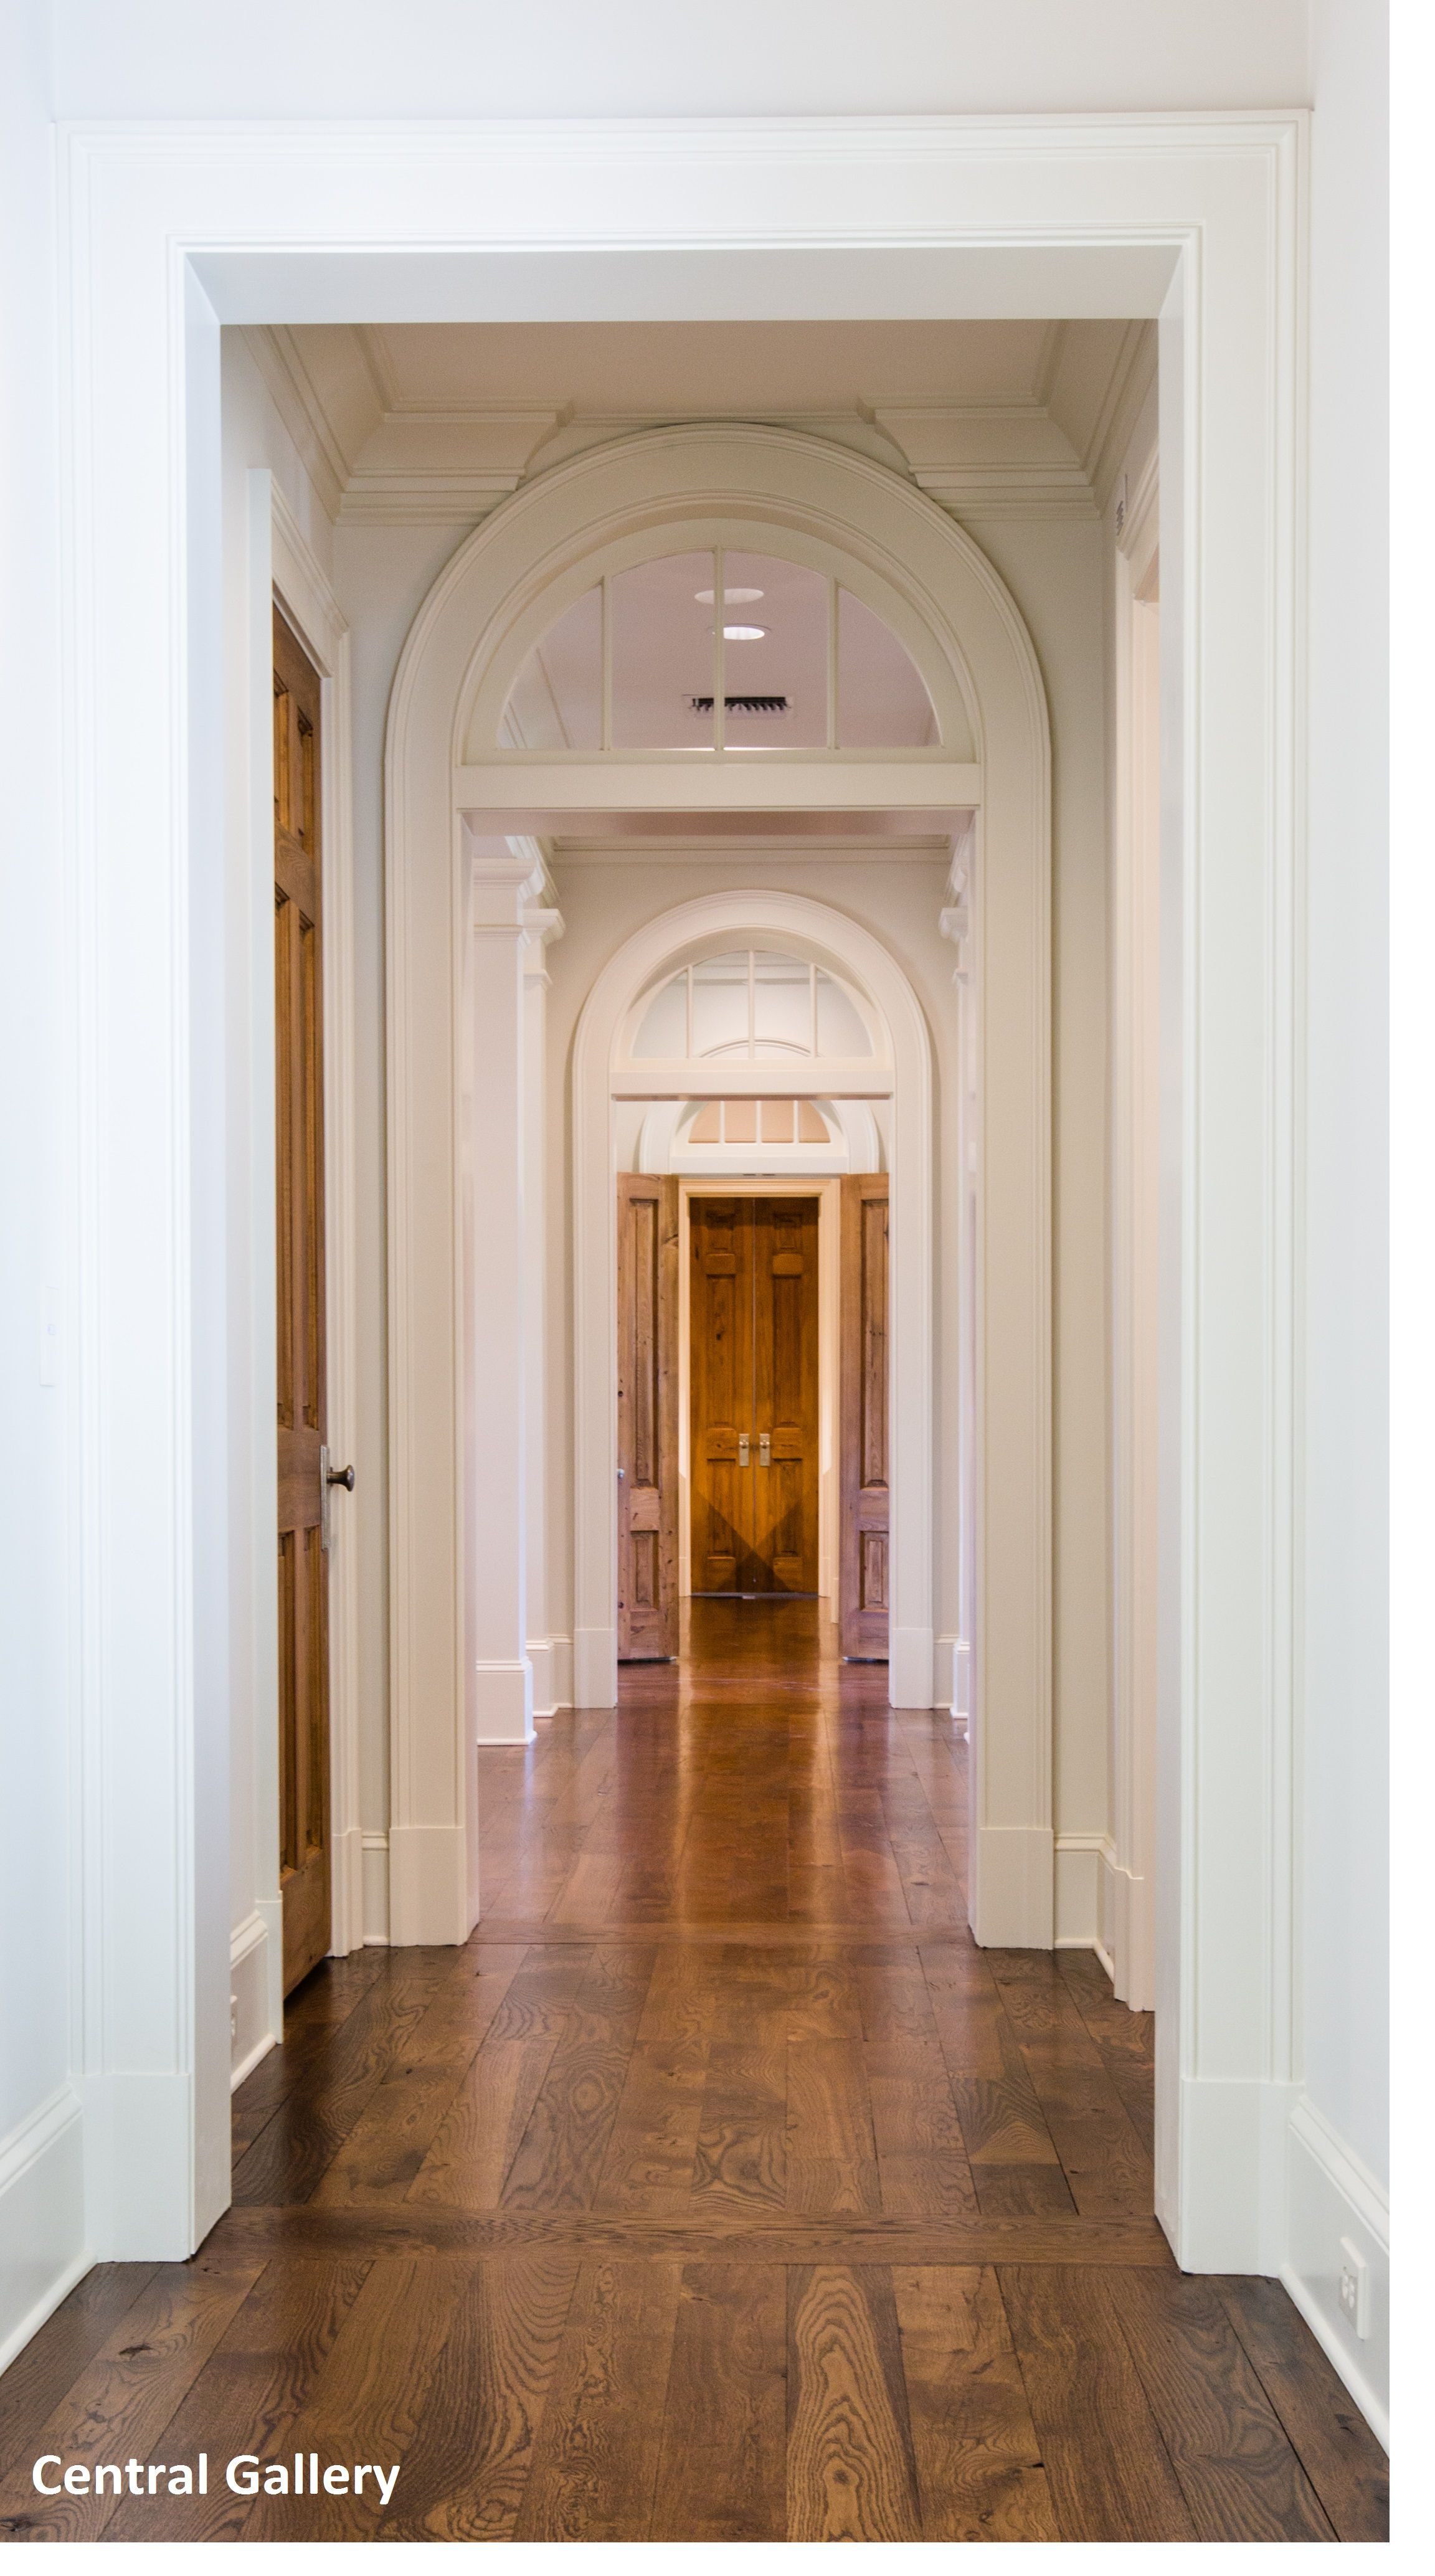 Gallery hall of arched top doors and transoms, antique oak floor, antique cypress doors.